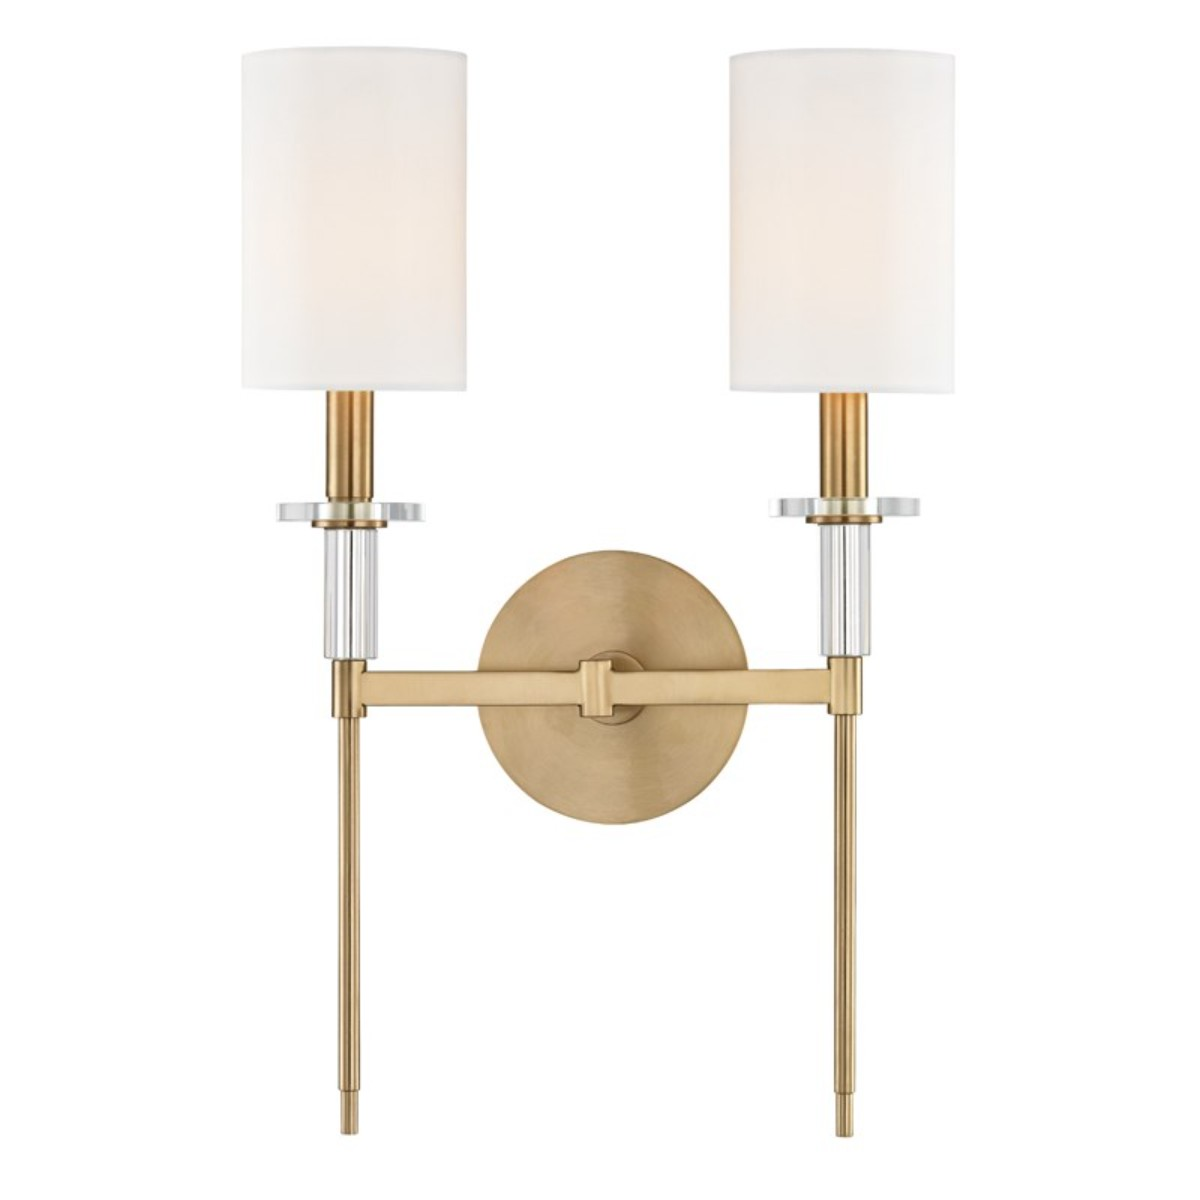 Hudson Valley   Amherst Double Wall Light   Aged Brass